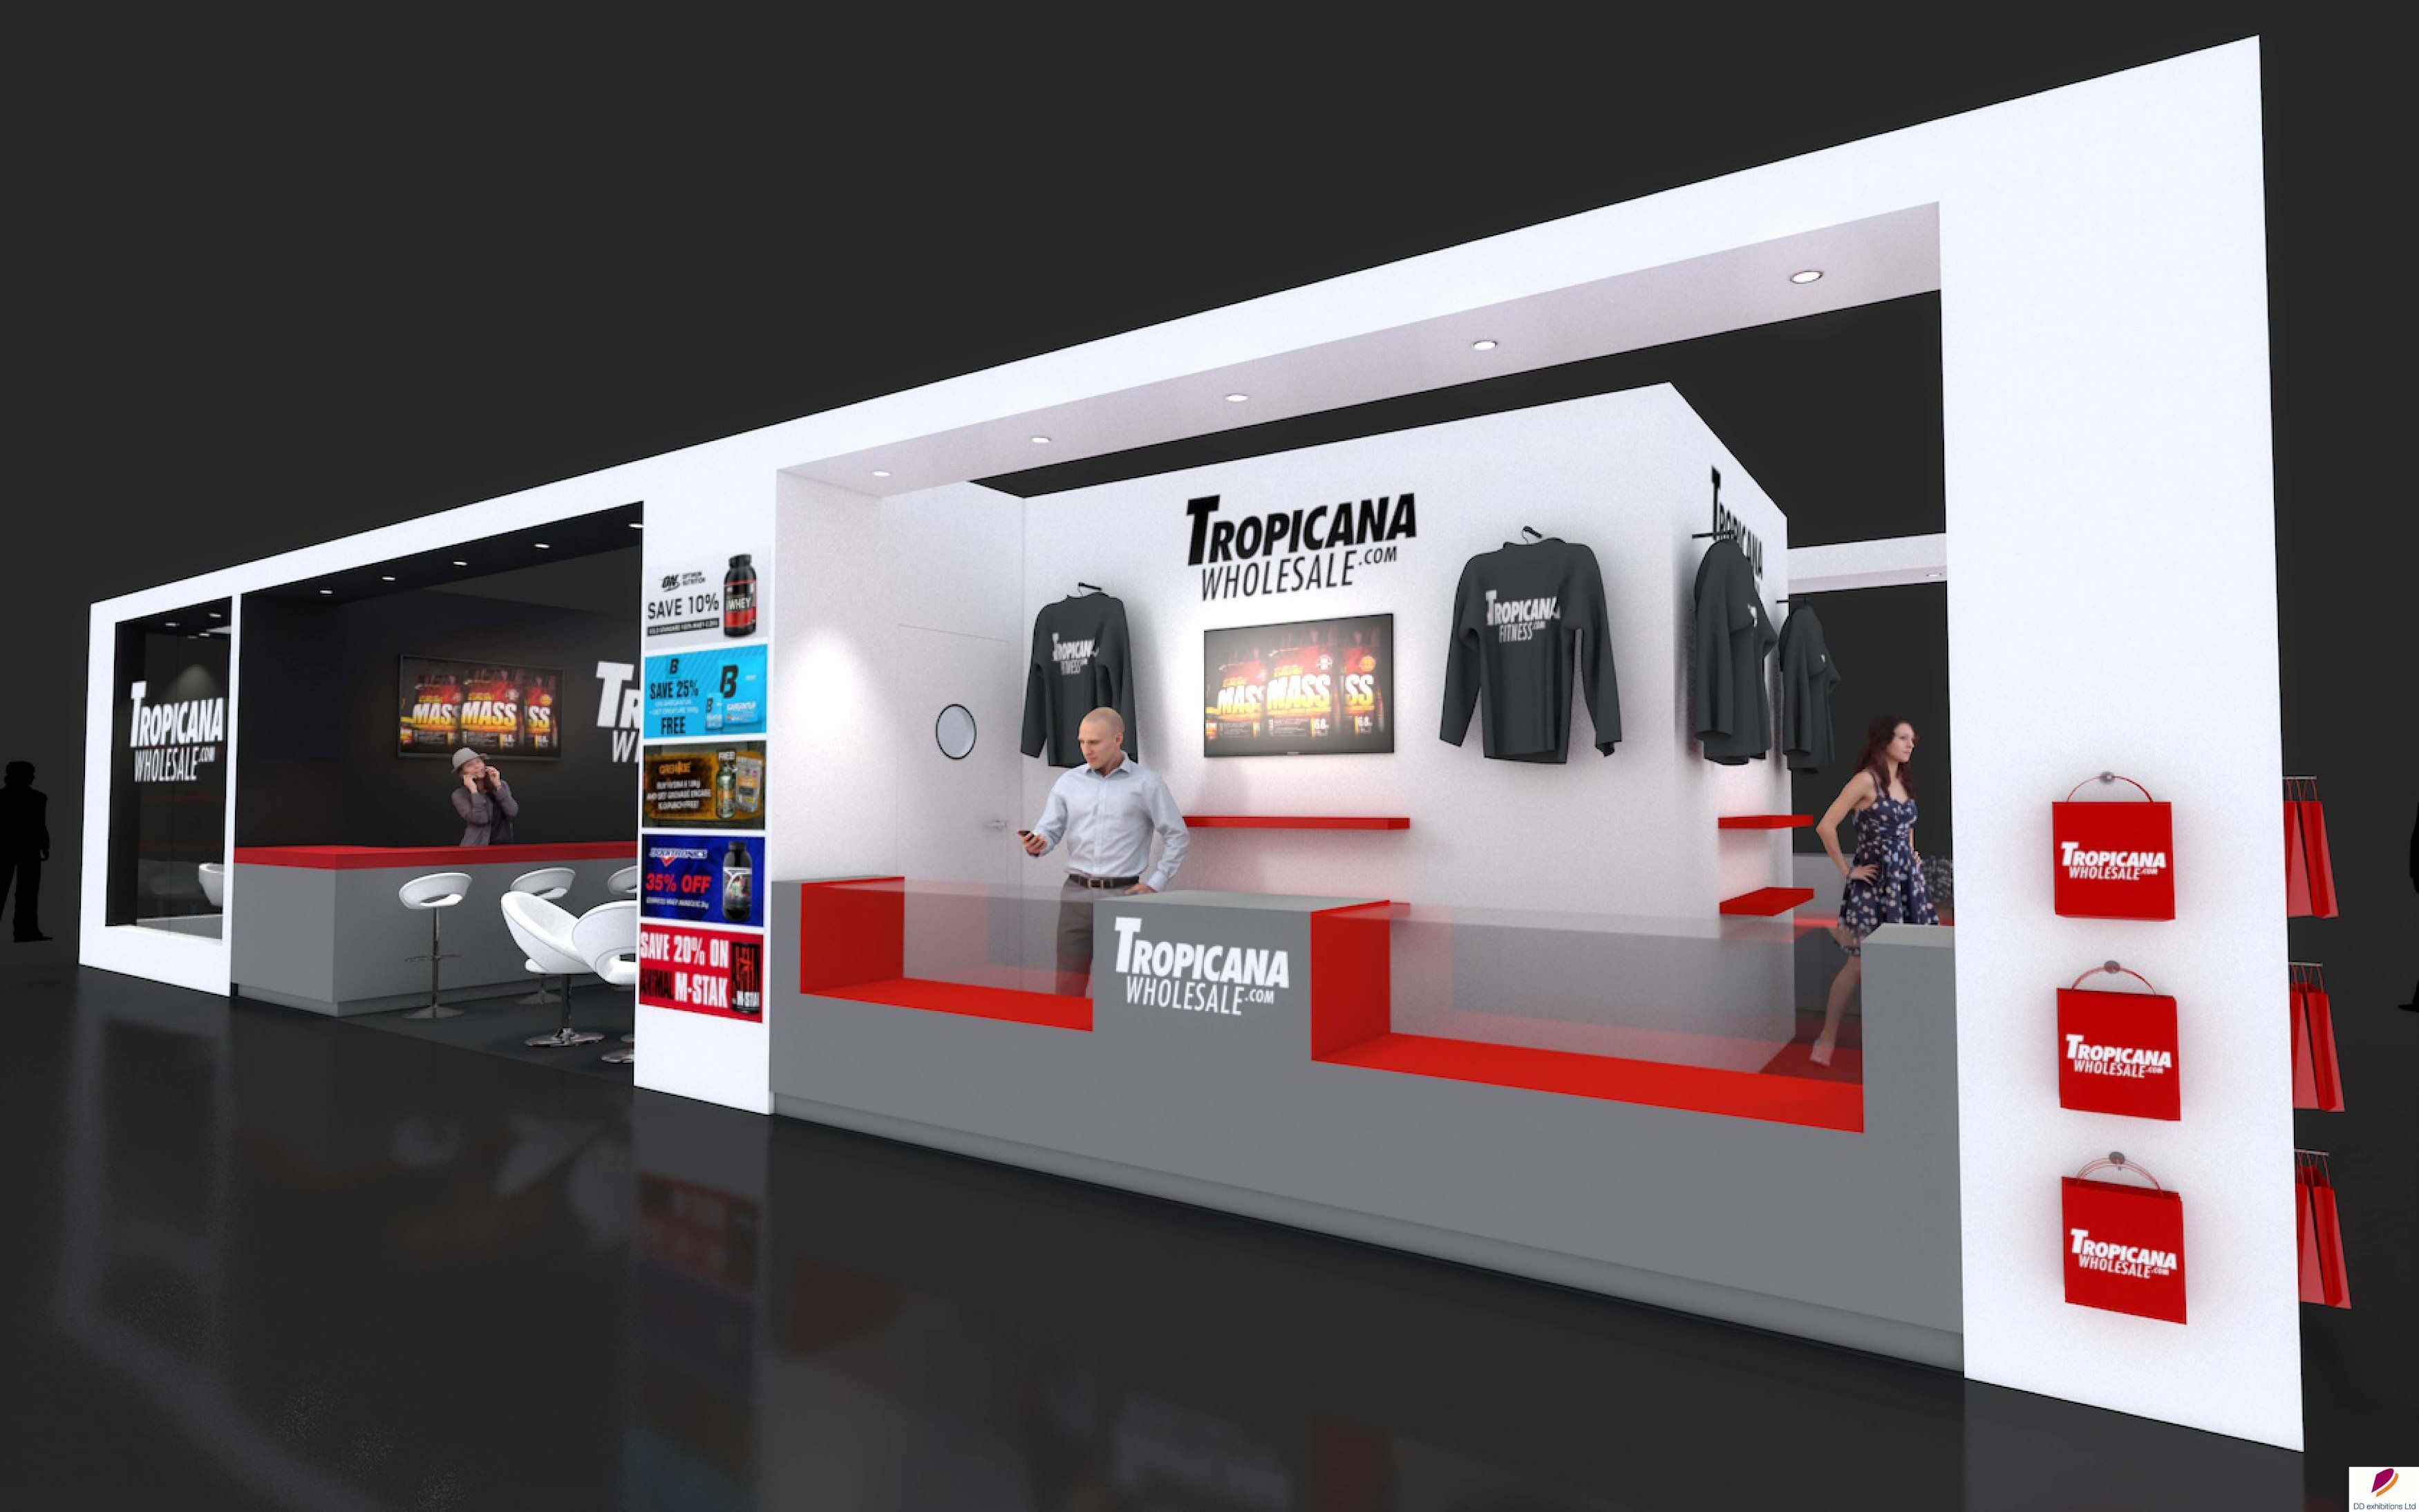 Expo Exhibition Stands Election : Exhibition stand design created for